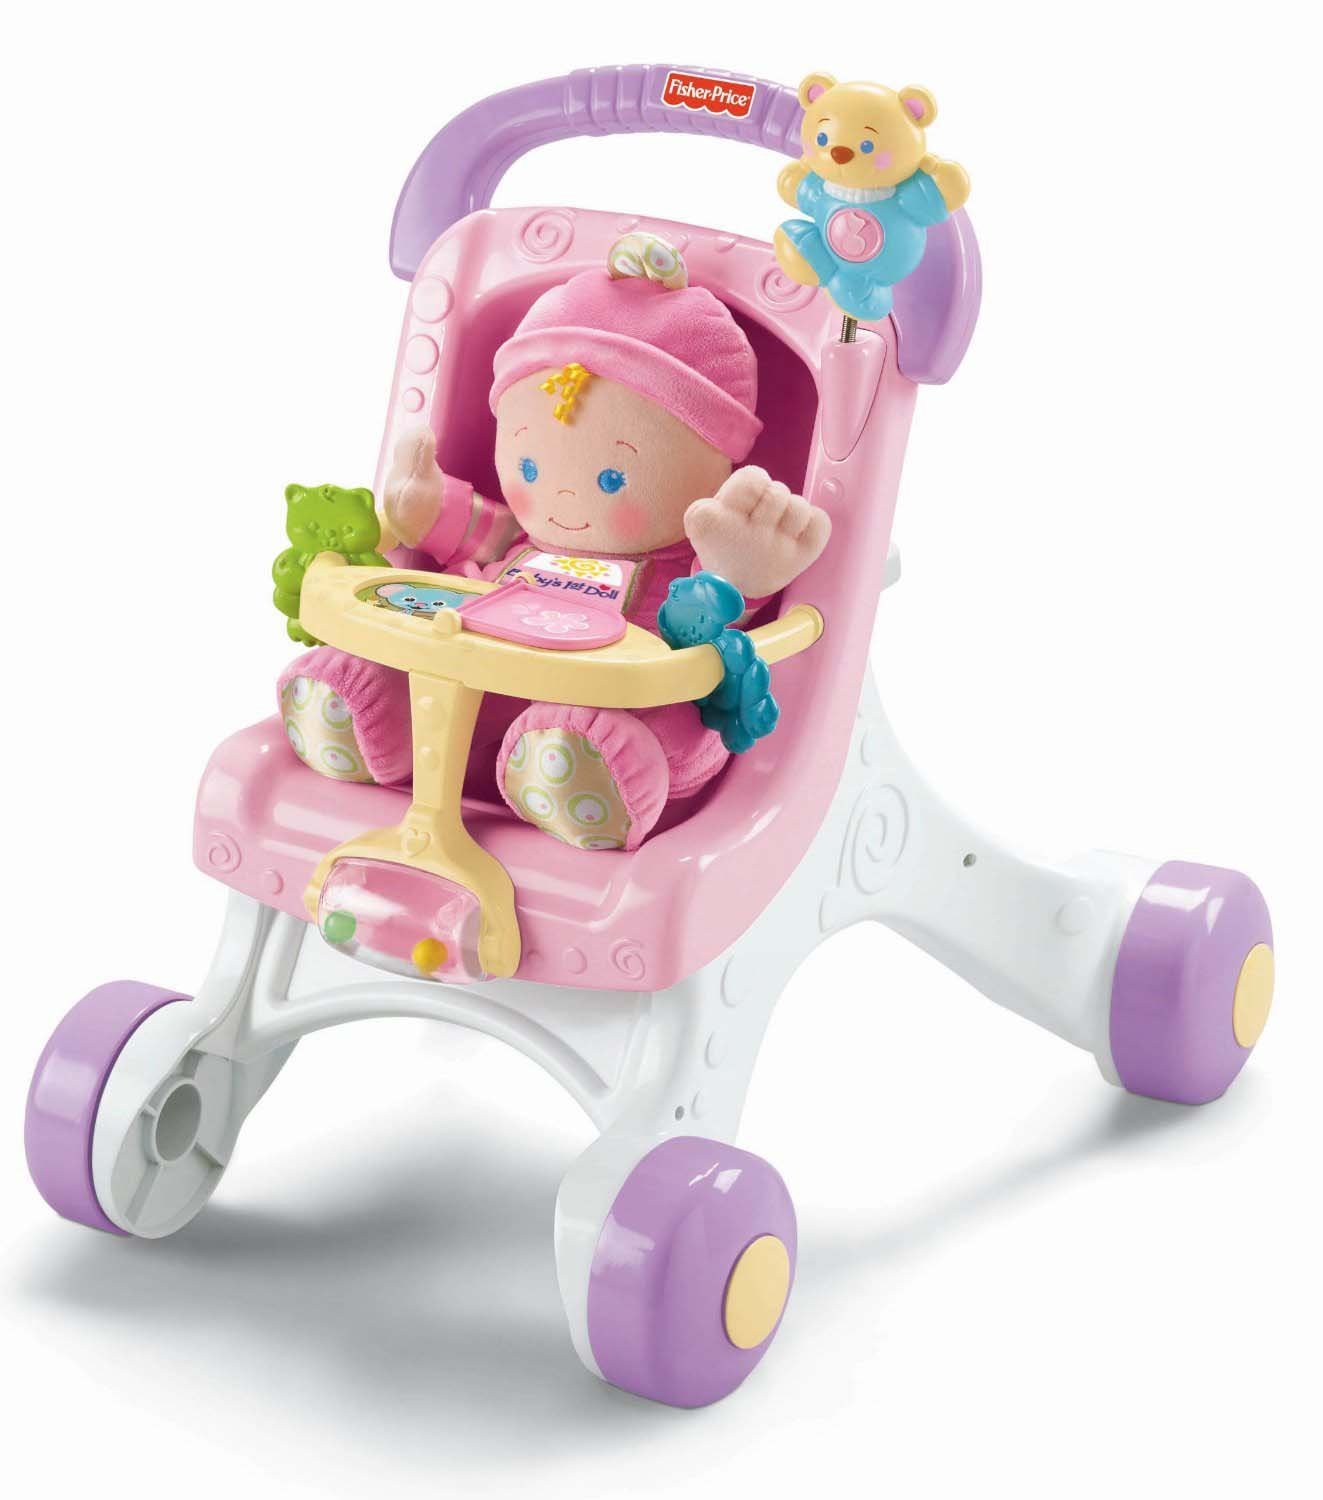 Baby Girl Toys : Toys for year old girl birthday christmas gifts